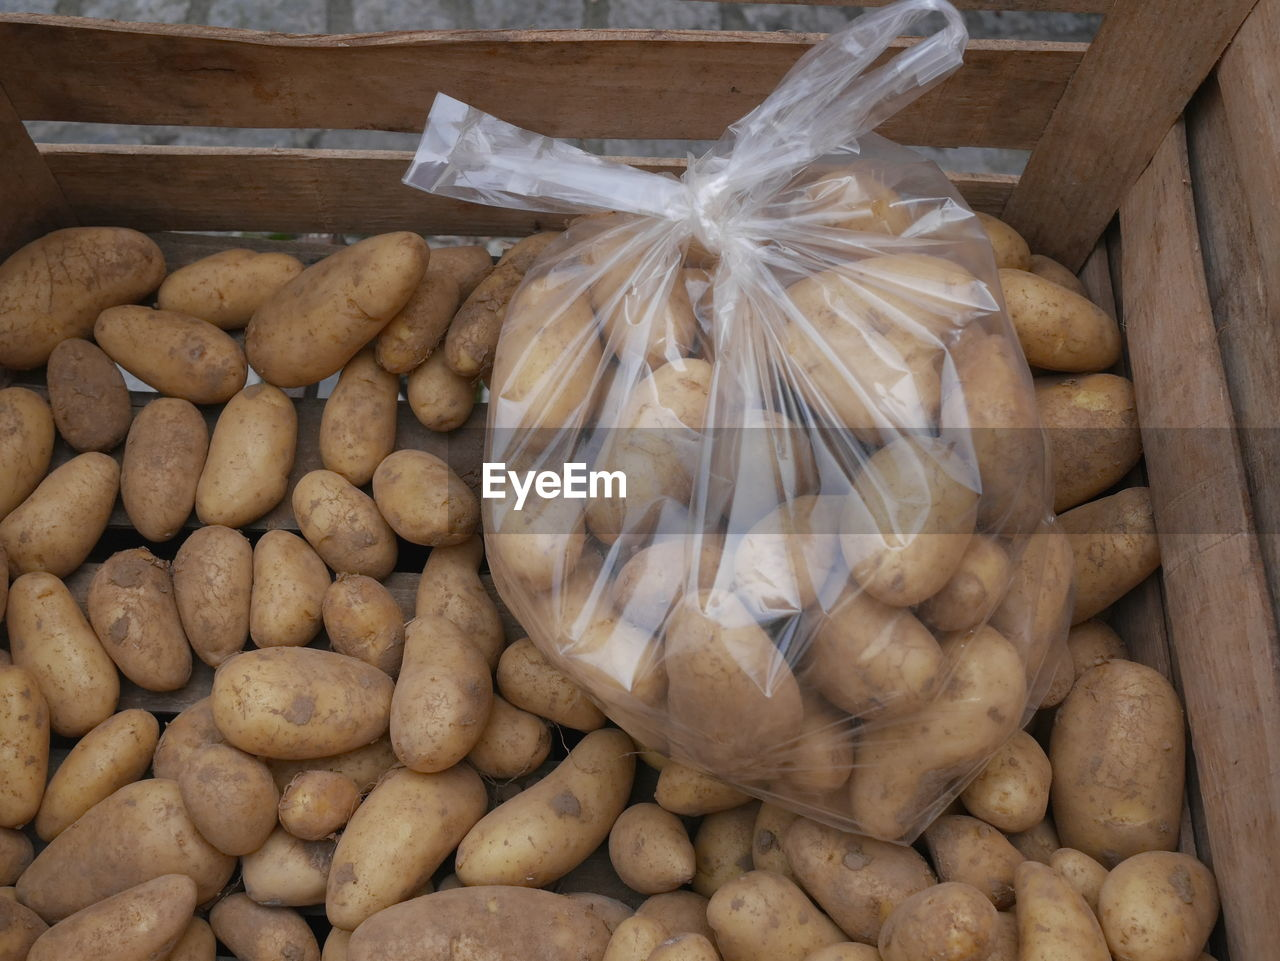 High Angle View Of Potatoes In Plastic Bag For Sale At Market